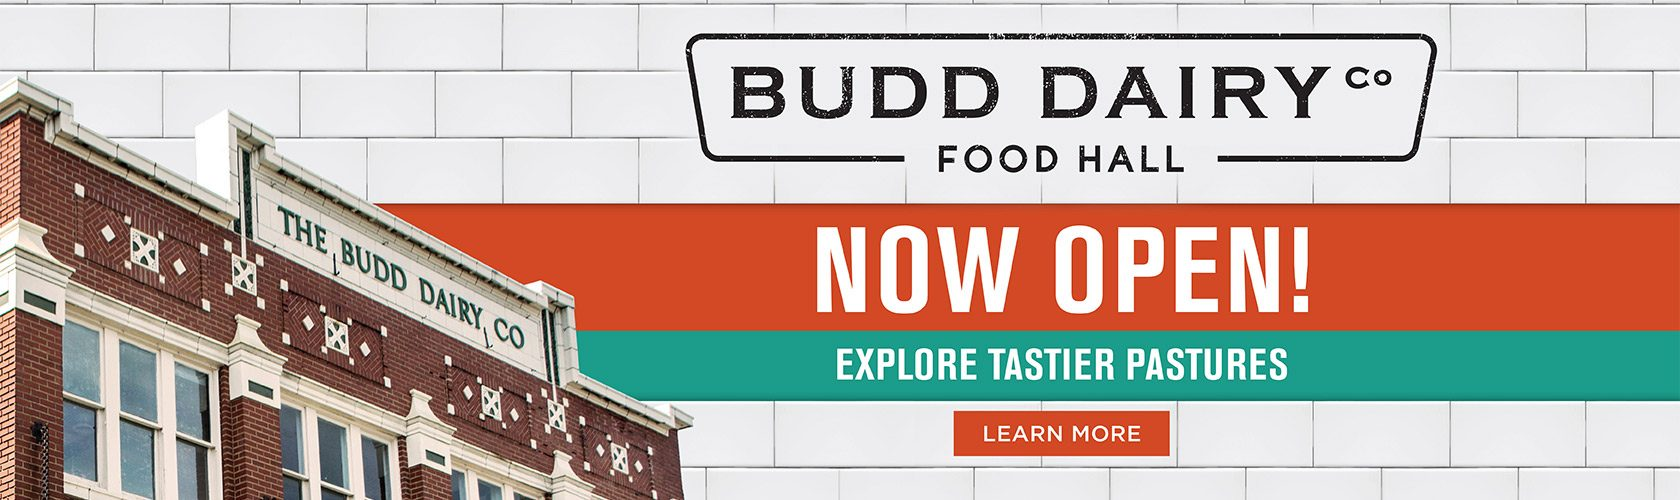 Budd Dairy Food Hall Now Open! Explore tastier pastures. Learn More